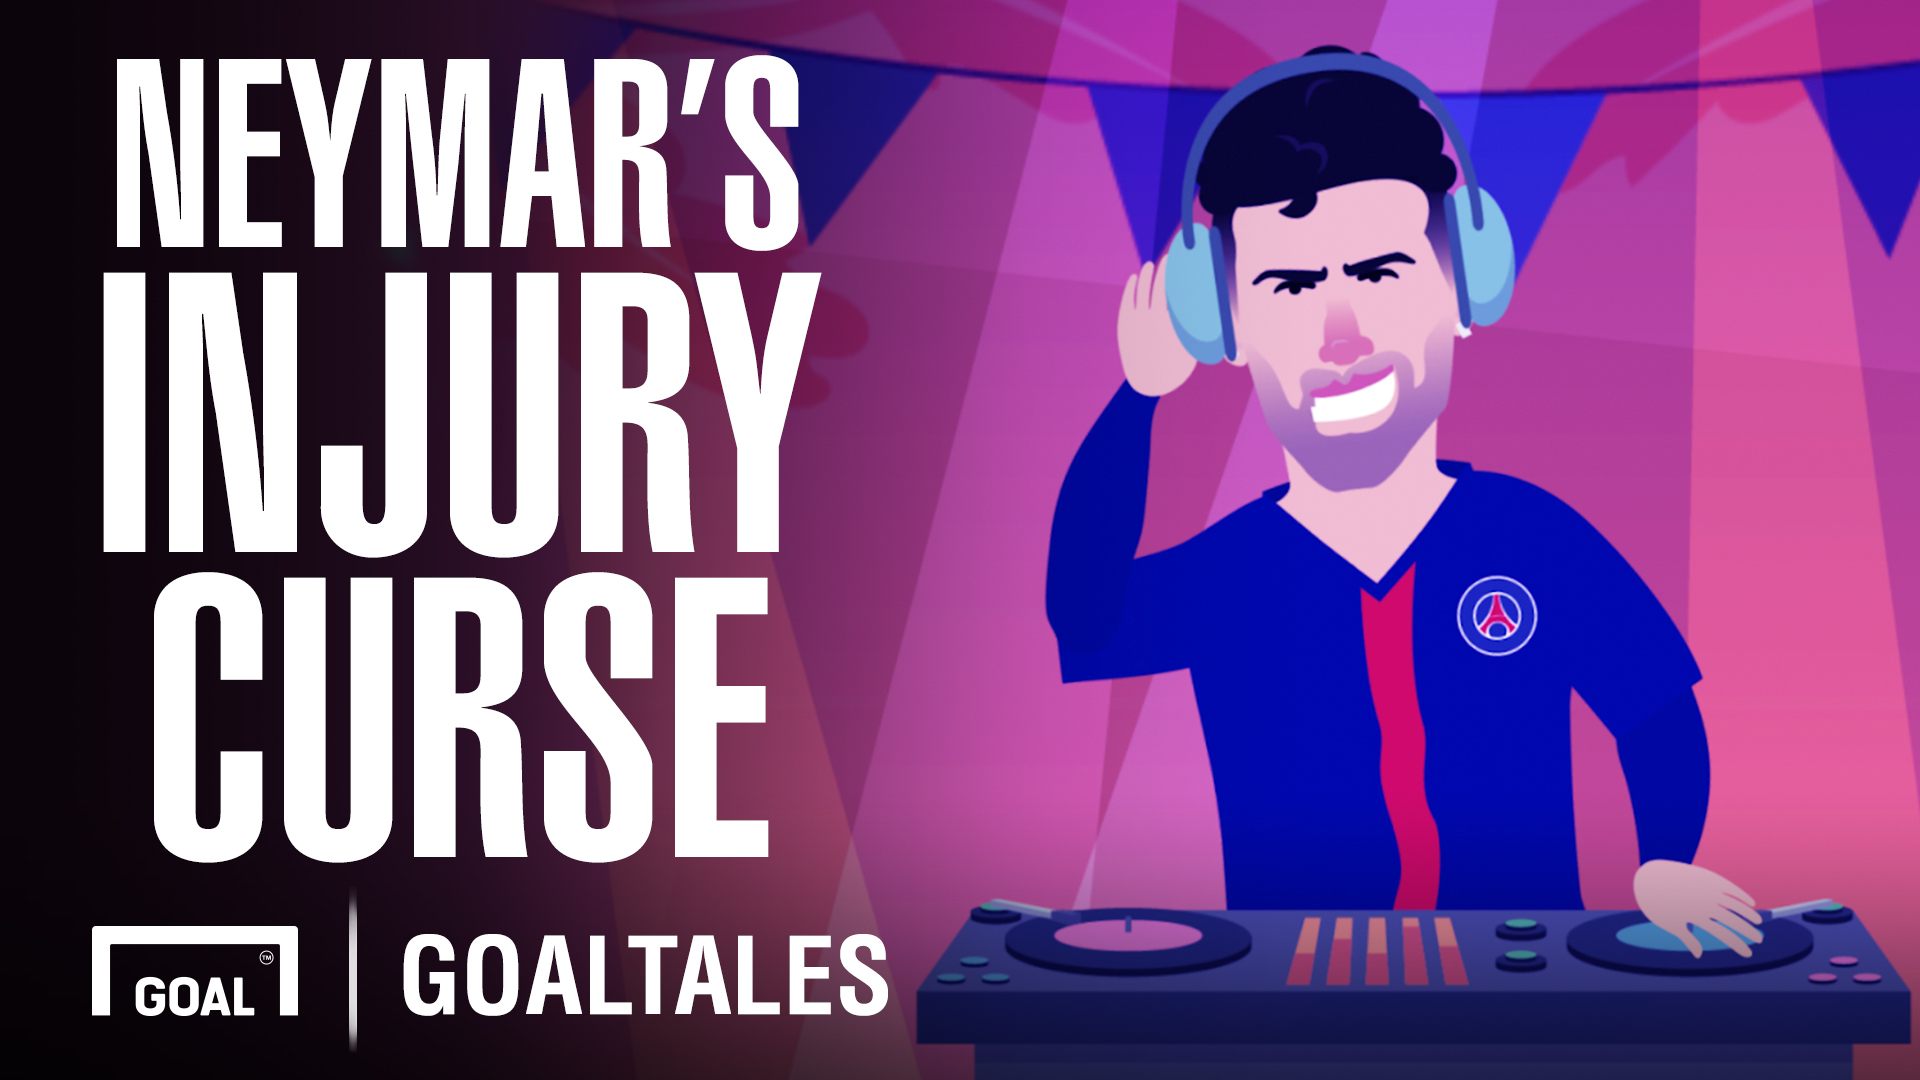 Video: Neymar's Injury Curse - Conspiracy or Coincidence?